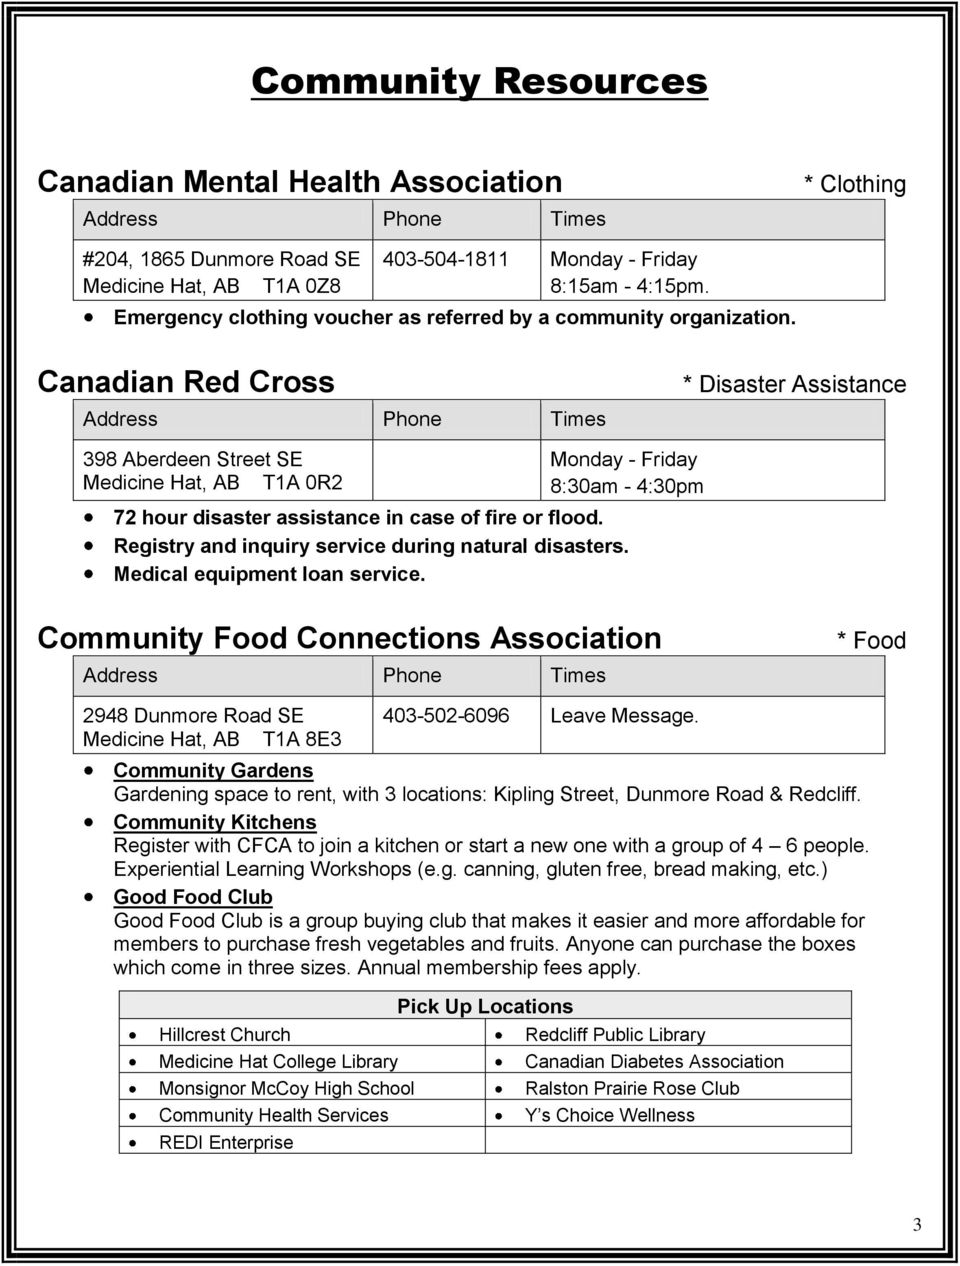 Canadian Red Cross * Disaster Assistance 398 Aberdeen Street SE T1A 0R2 Monday - Friday 8:30am - 4:30pm 72 hour disaster assistance in case of fire or flood.